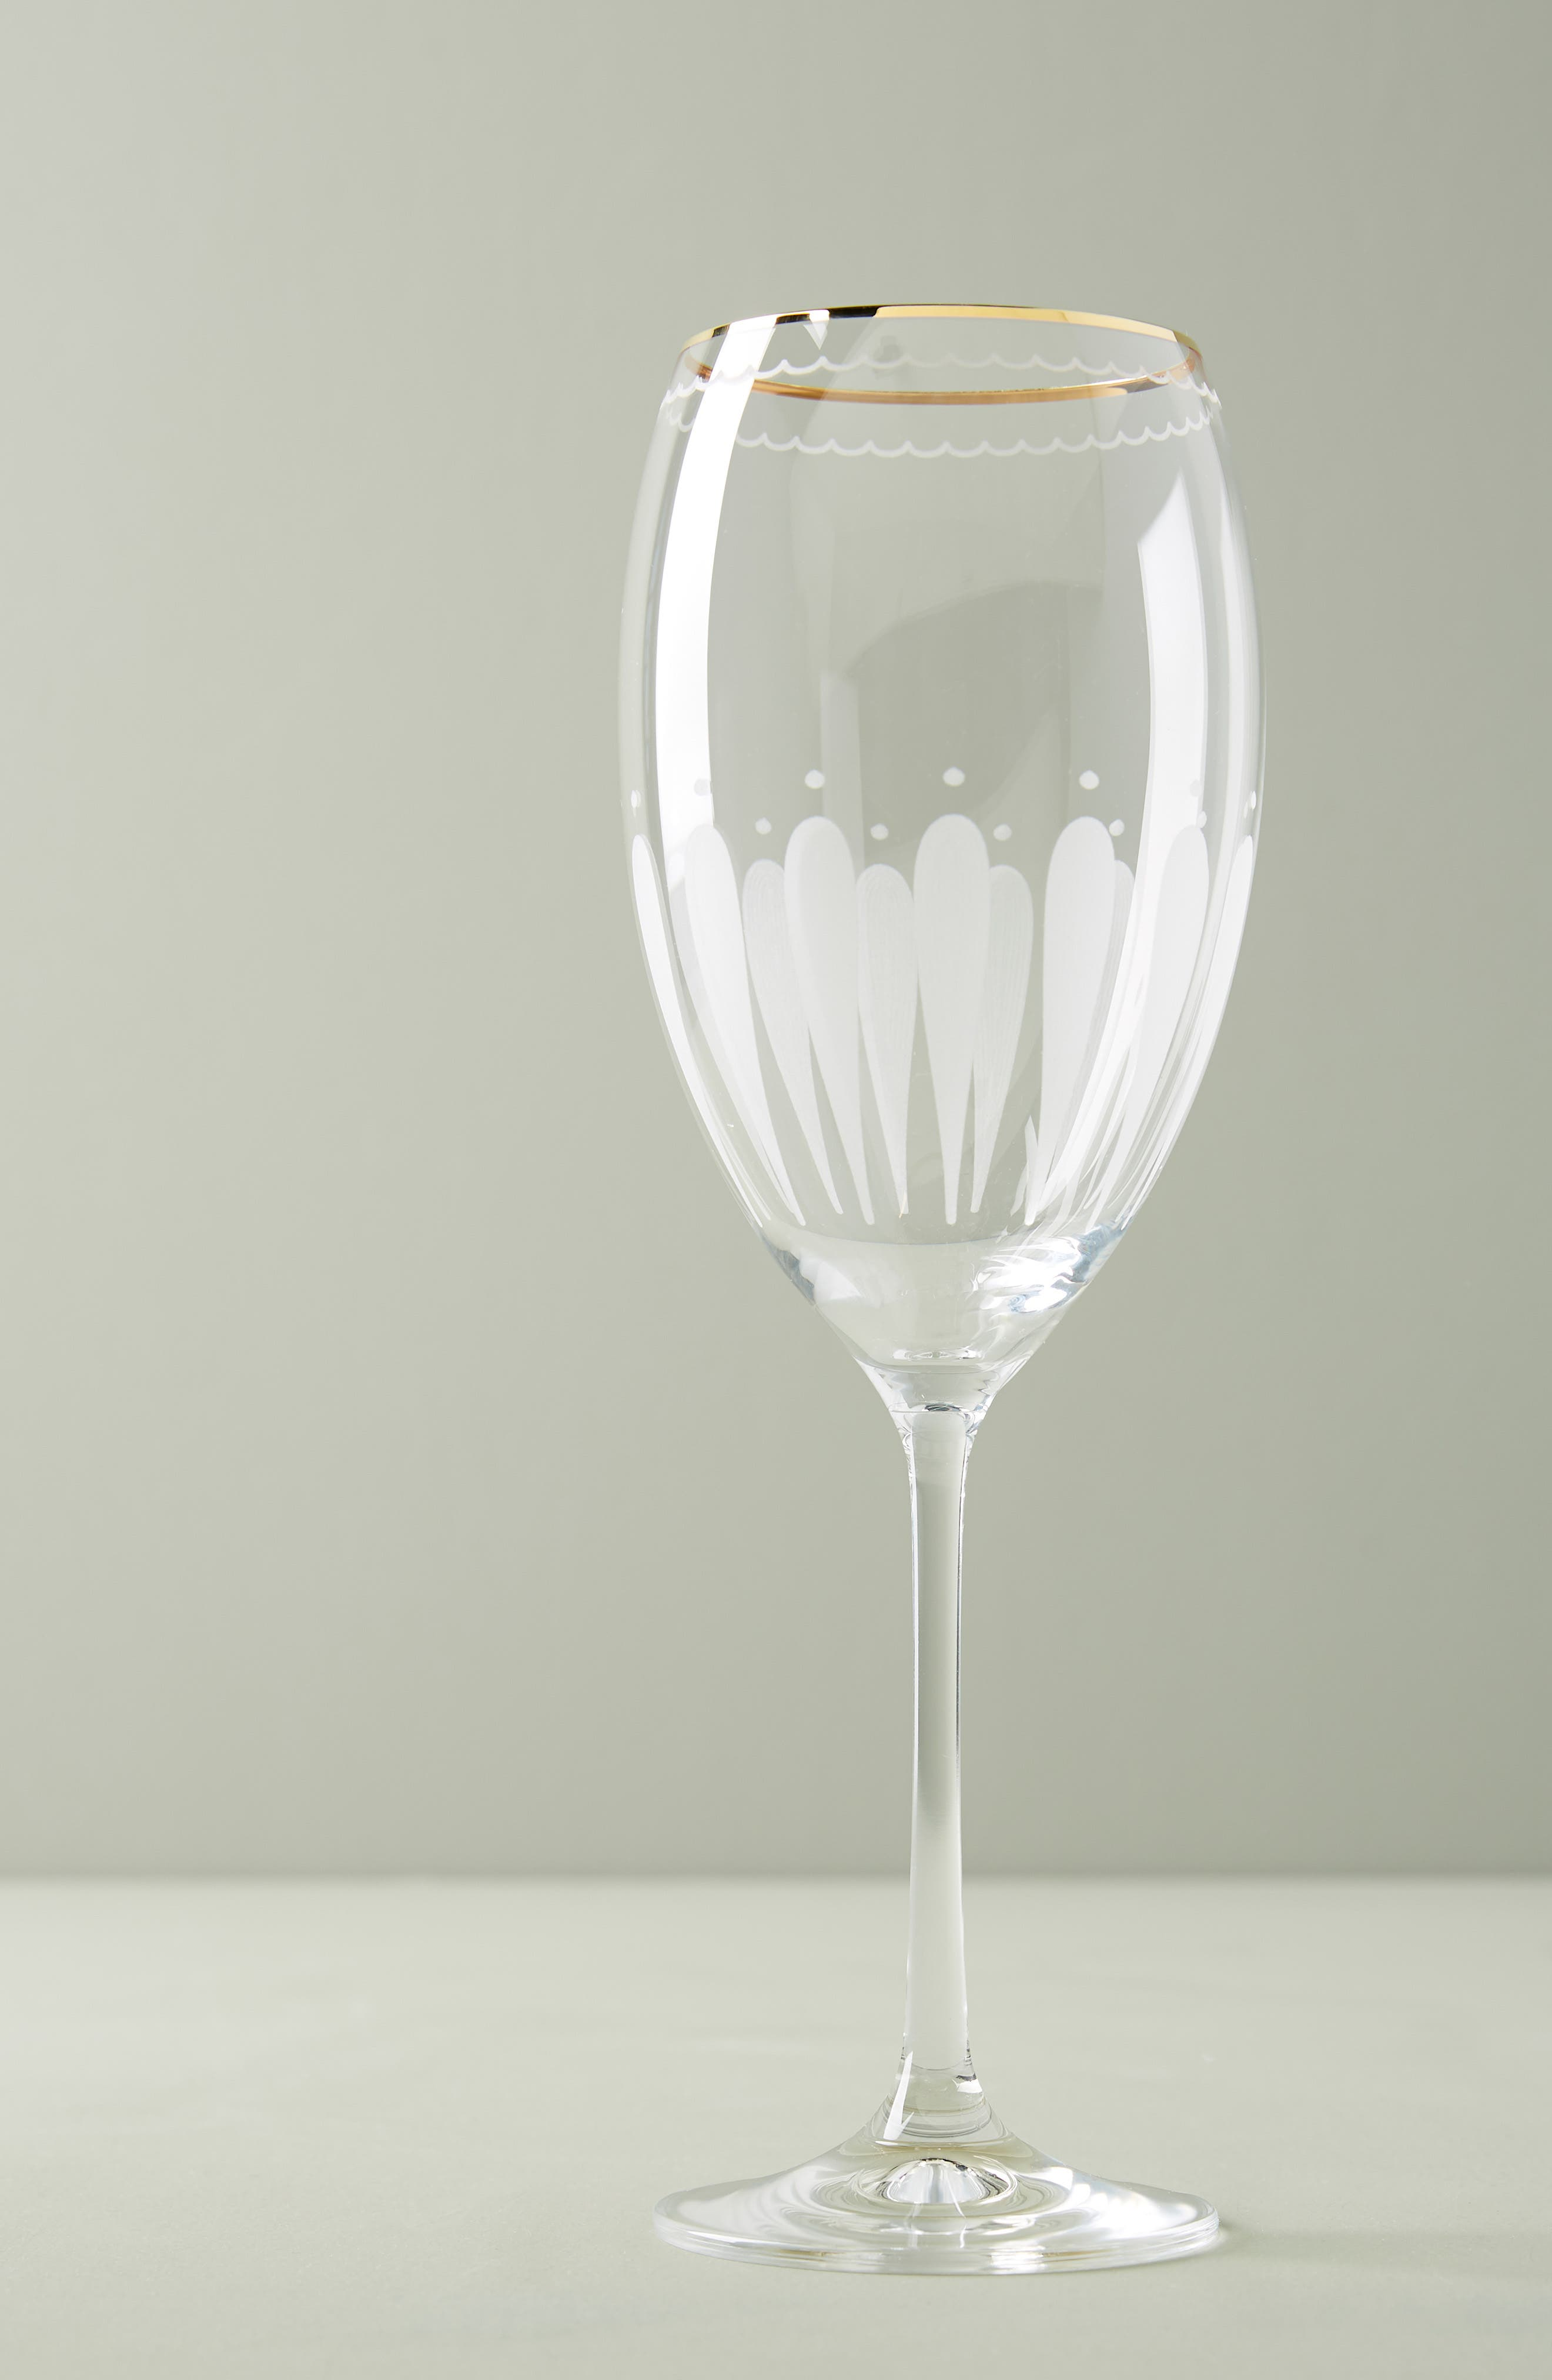 Odele Set of 4 Wine Glasses,                             Main thumbnail 1, color,                             CLEAR